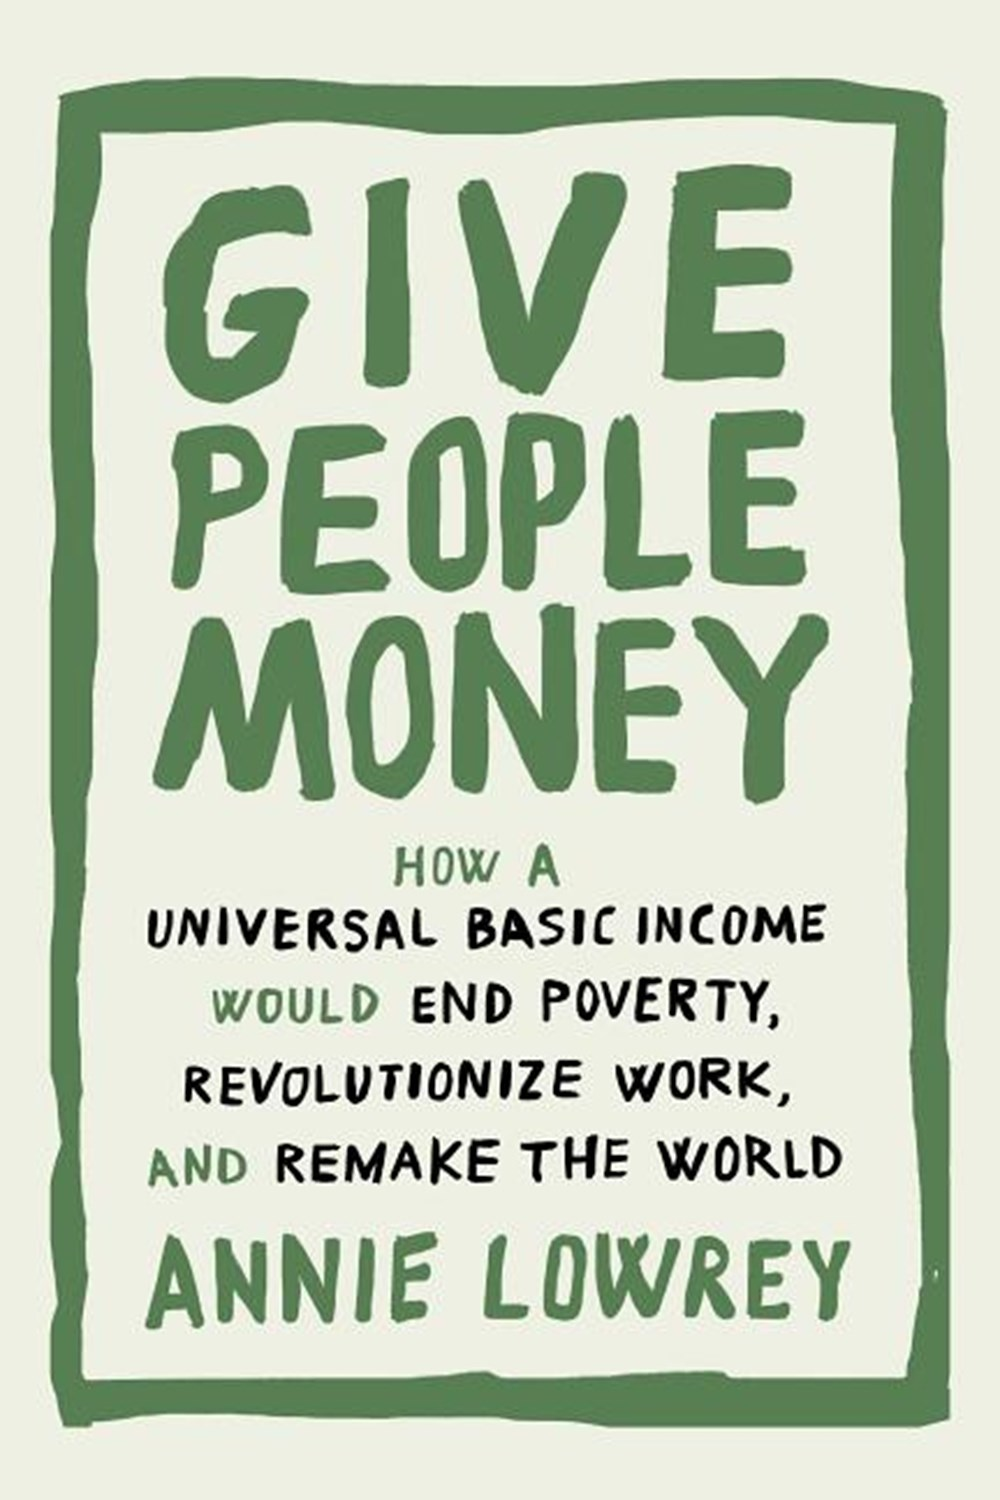 Give People Money How a Universal Basic Income Would End Poverty, Revolutionize Work, and Remake the